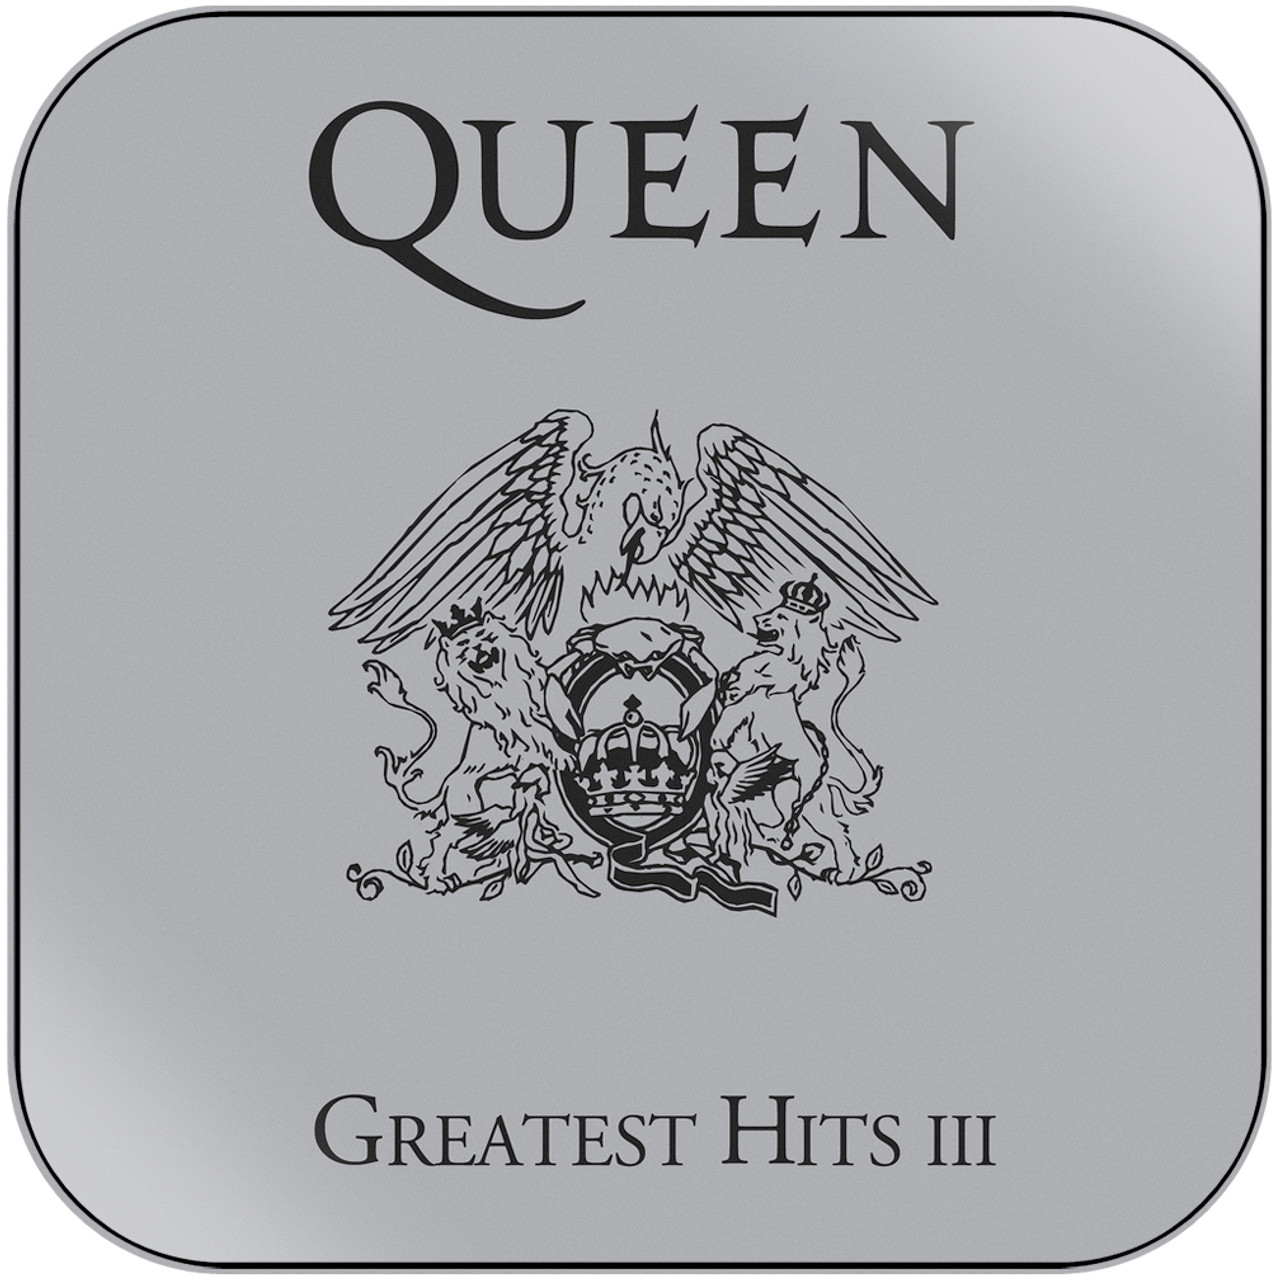 Queen - Greatest Hits Iii Album Cover Sticker Album Cover Sticker